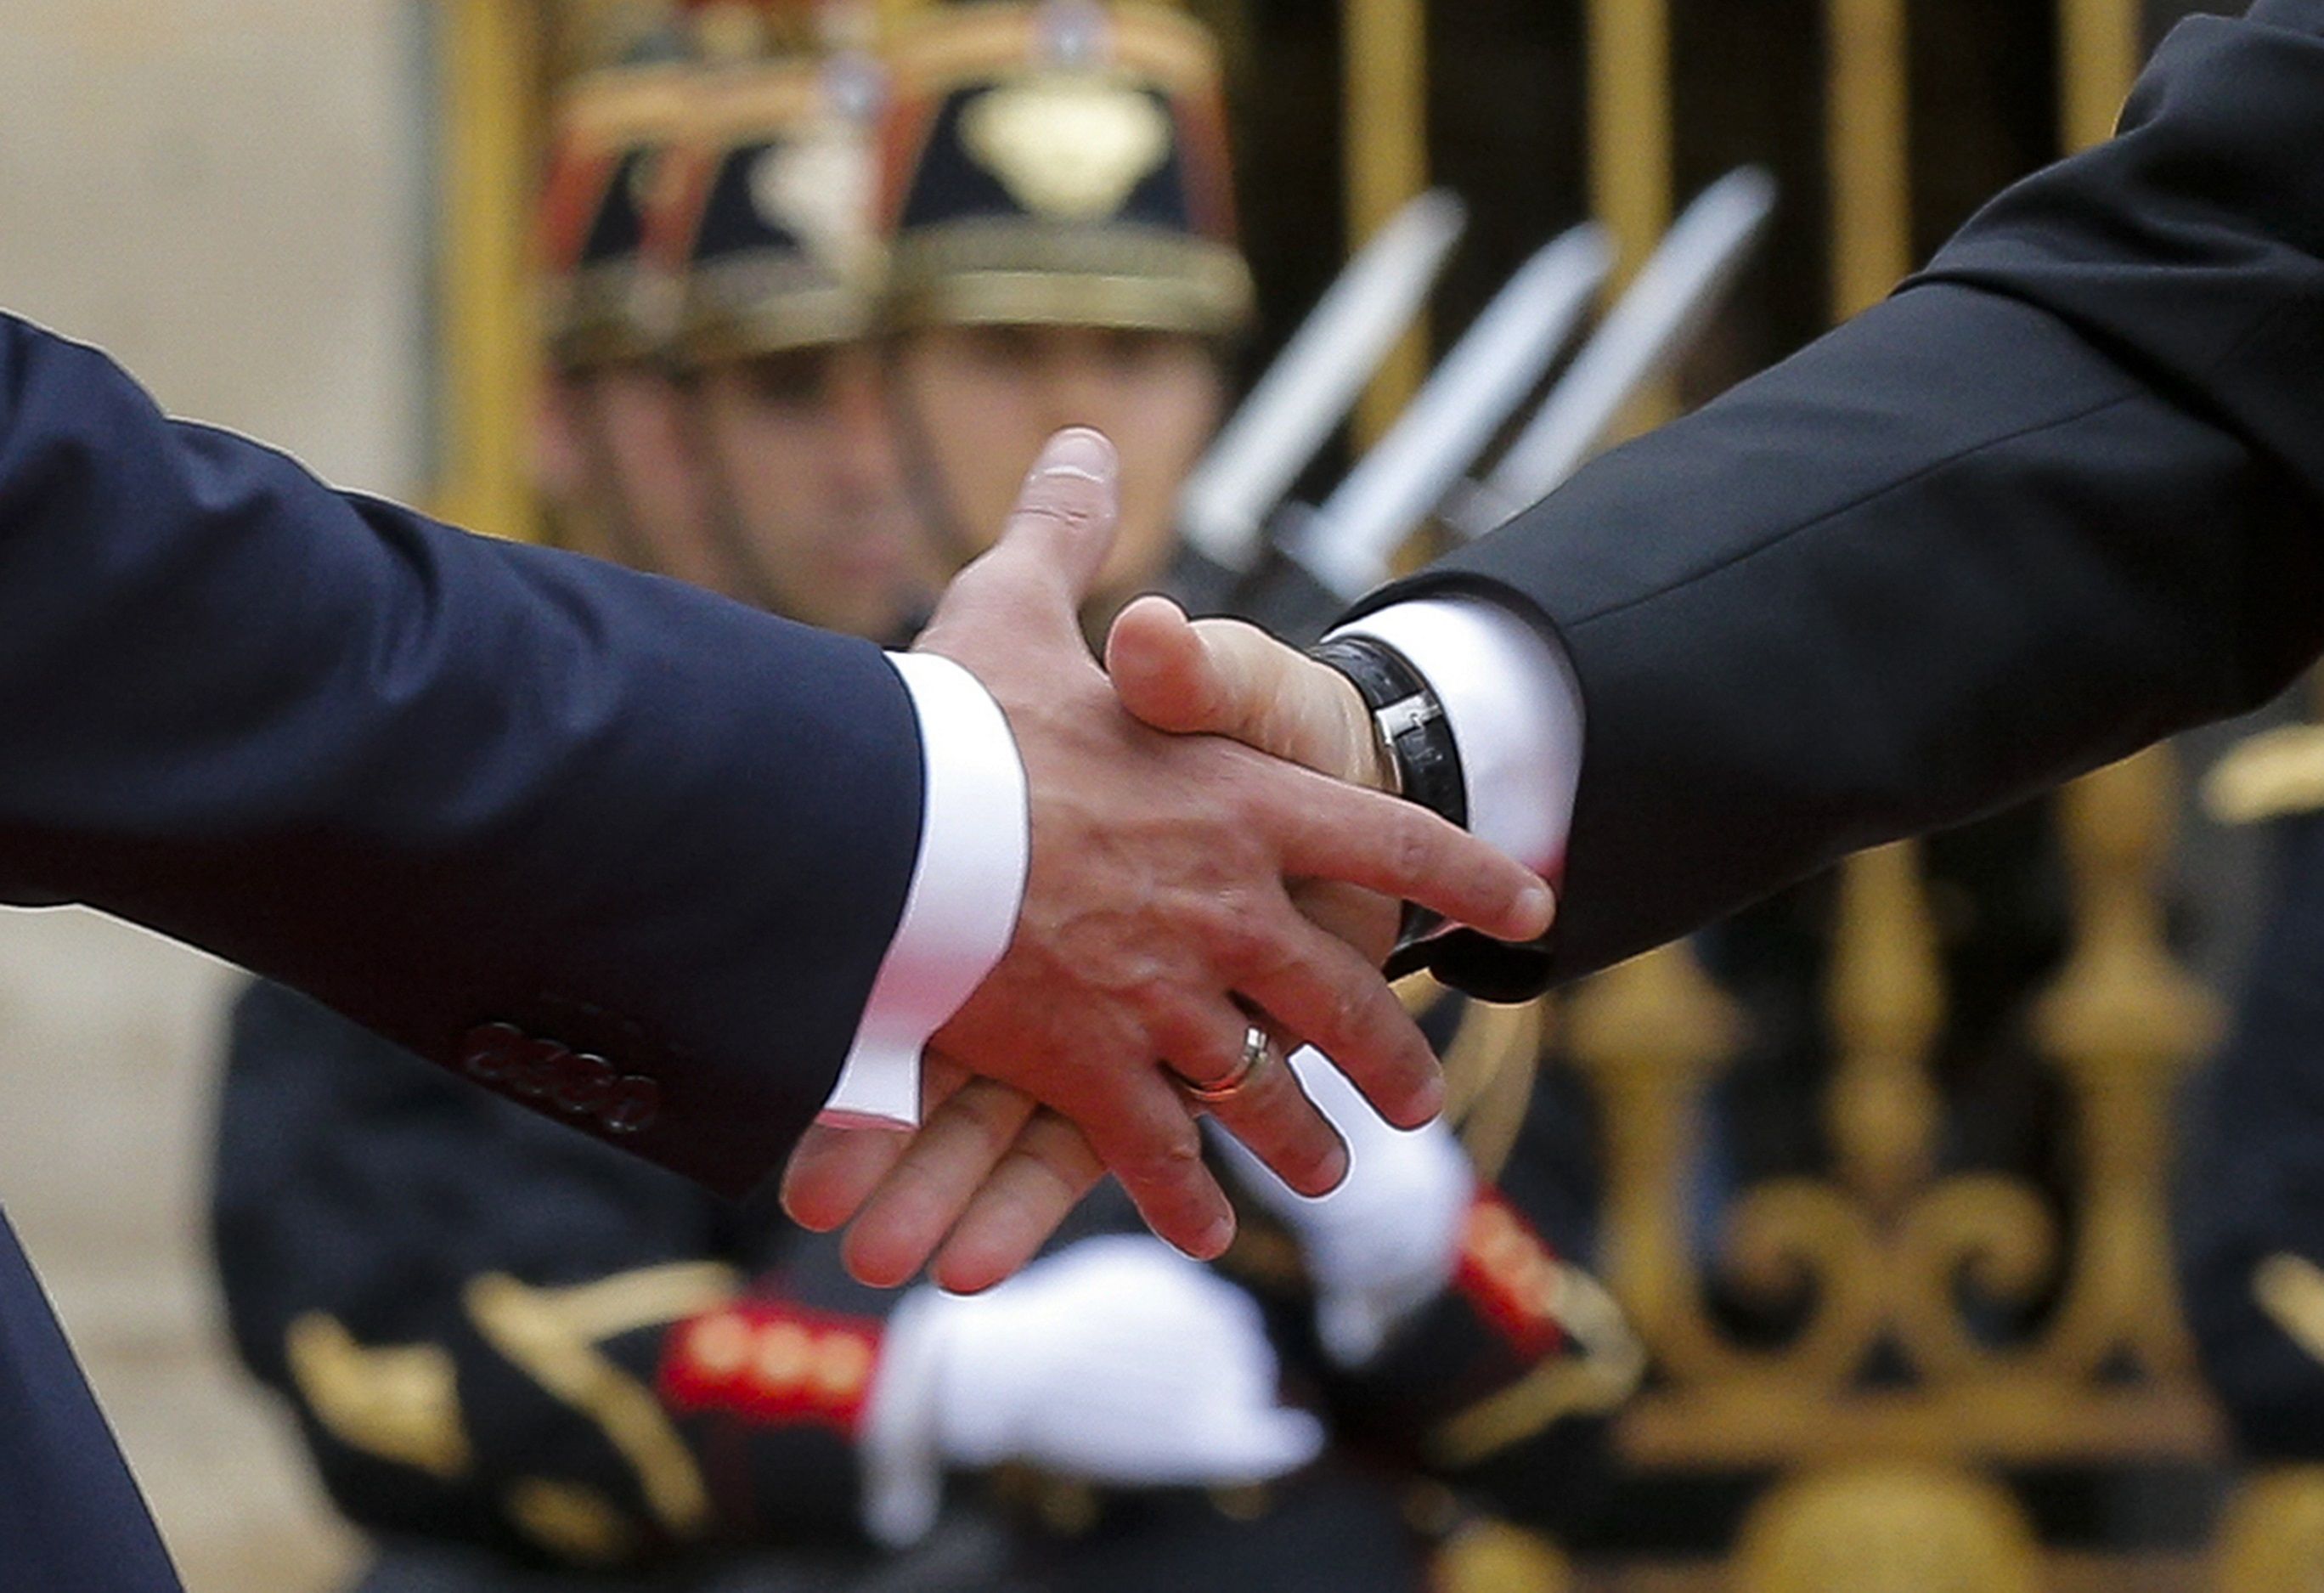 French President Emmanuel Macron (L) shakes hands with Russian President Vladimir Putin during a meeting at the Chateau de Versailles near Paris, France, May 29, 2017.  (REUTERS/Alexander Zemlianichenko/Pool)